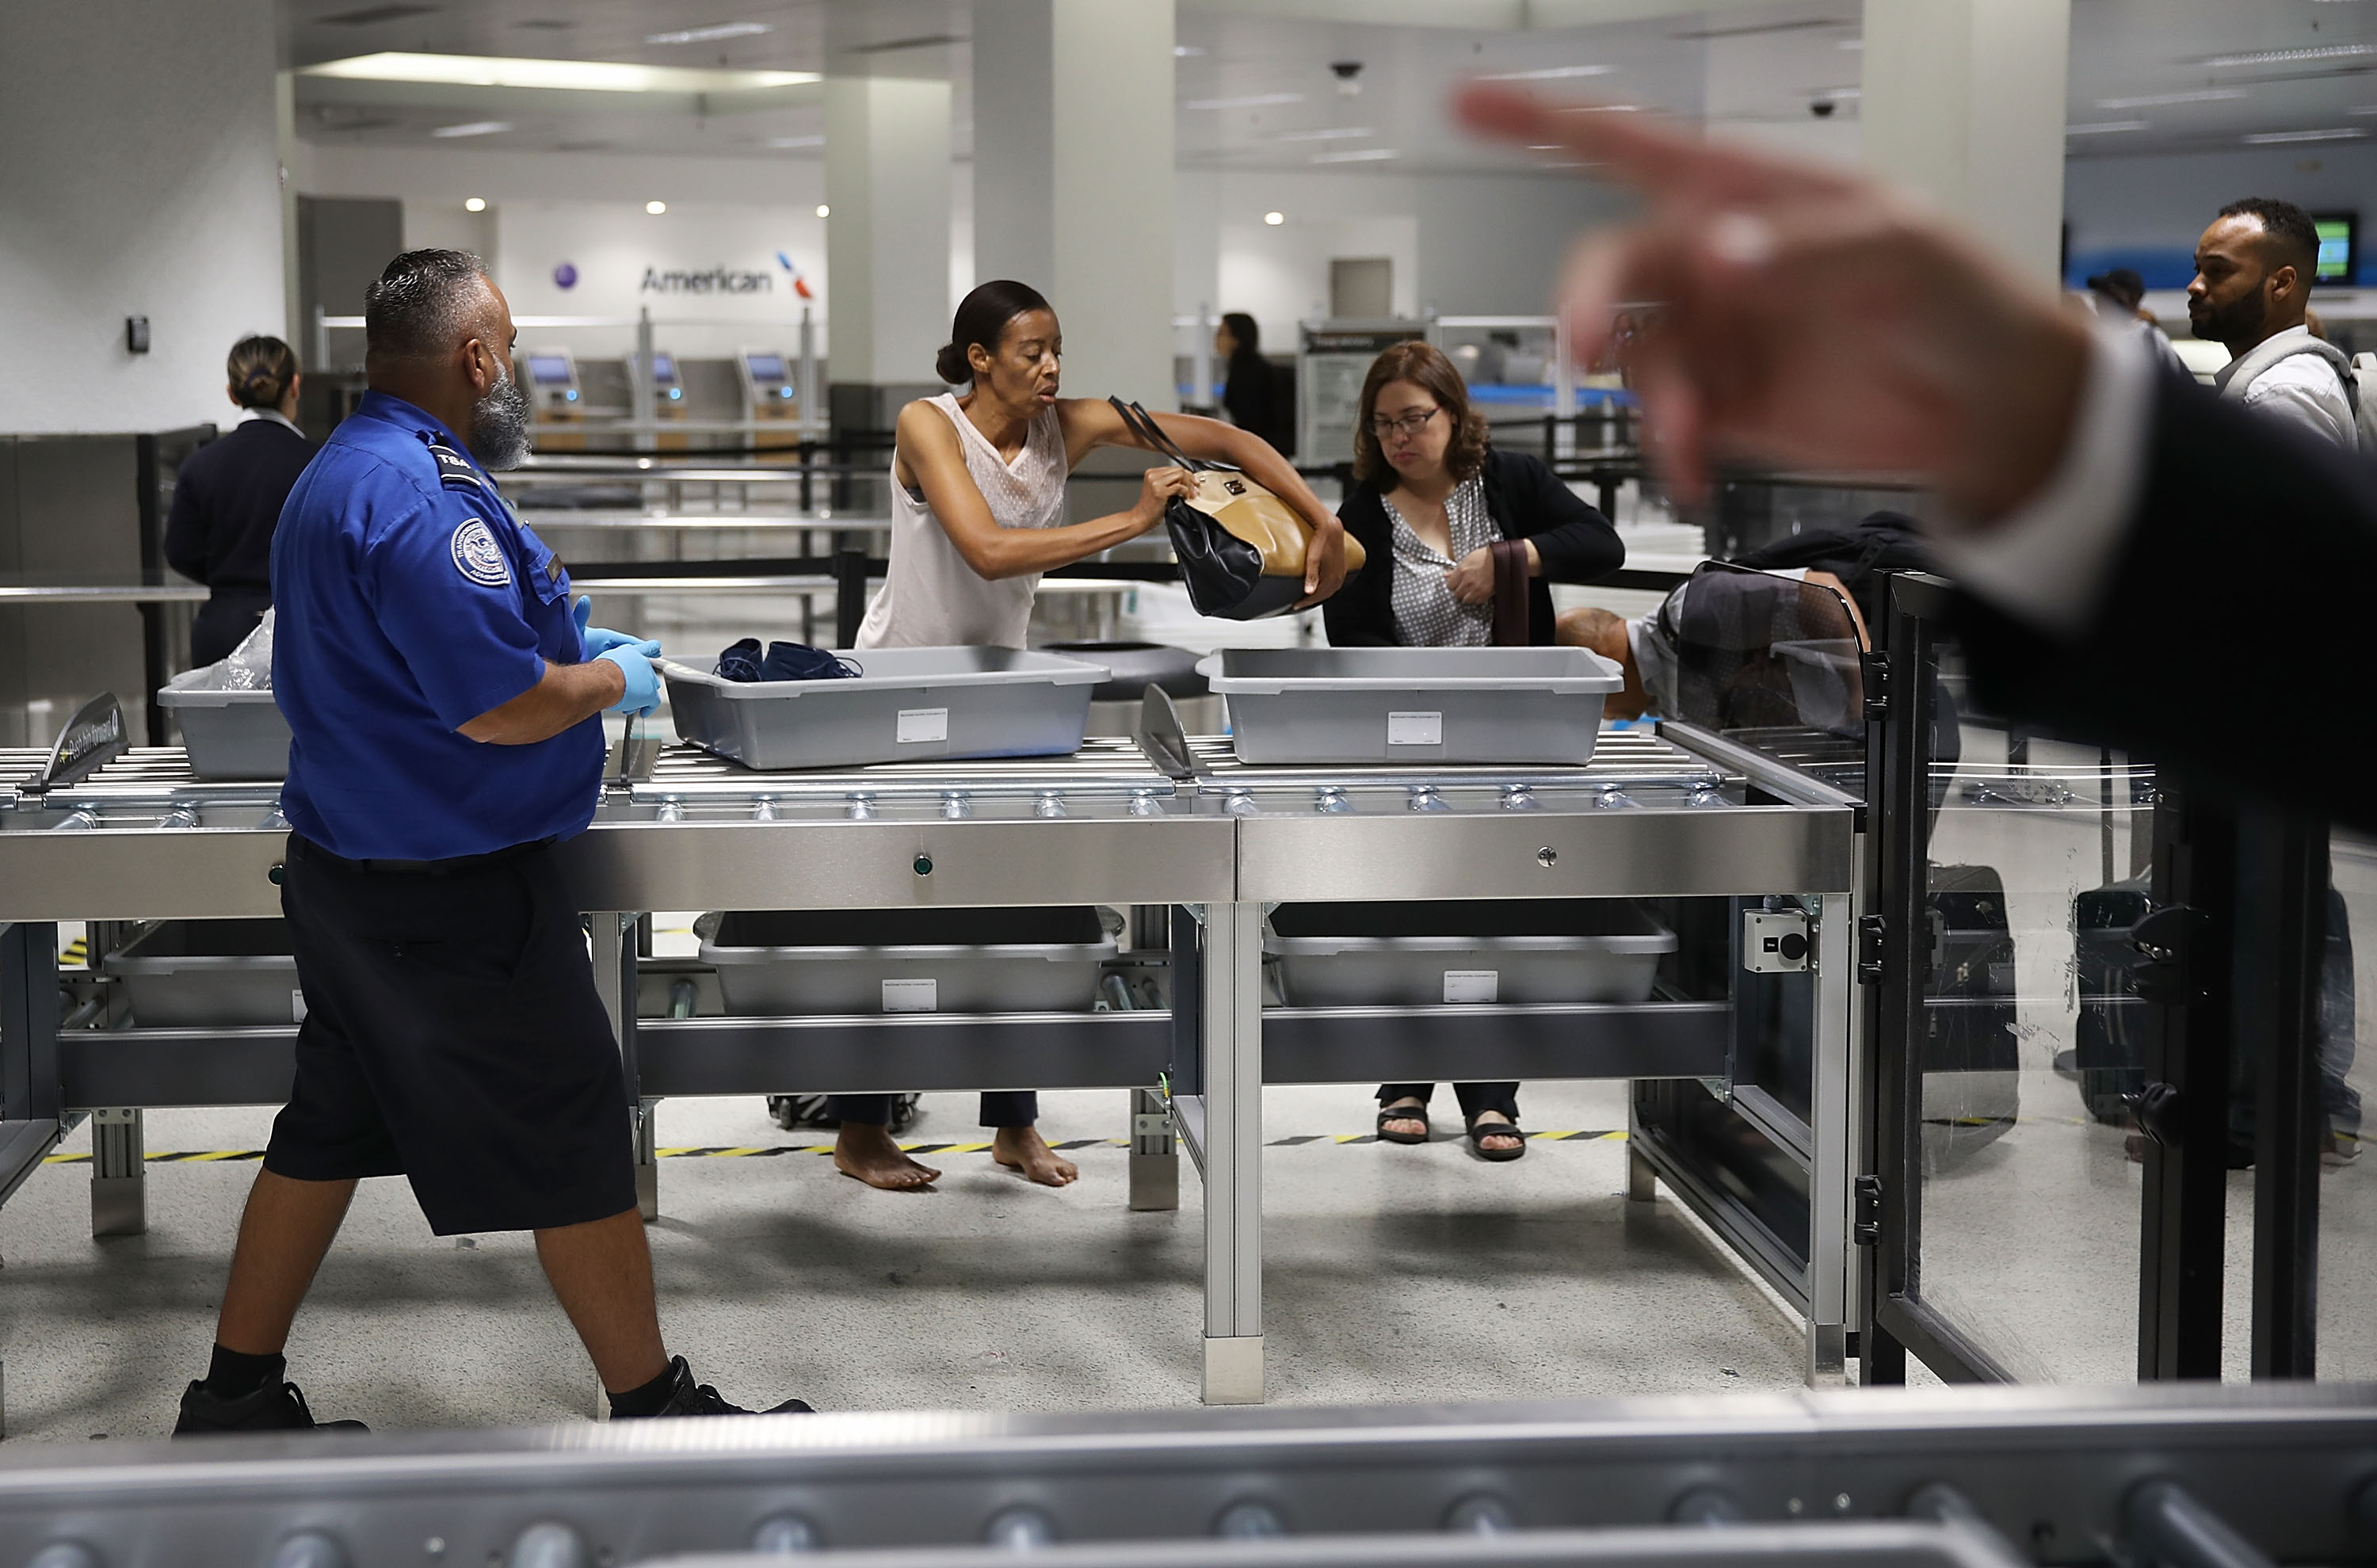 Miami International Airport Launches 2 Automated Security Screening Lanes